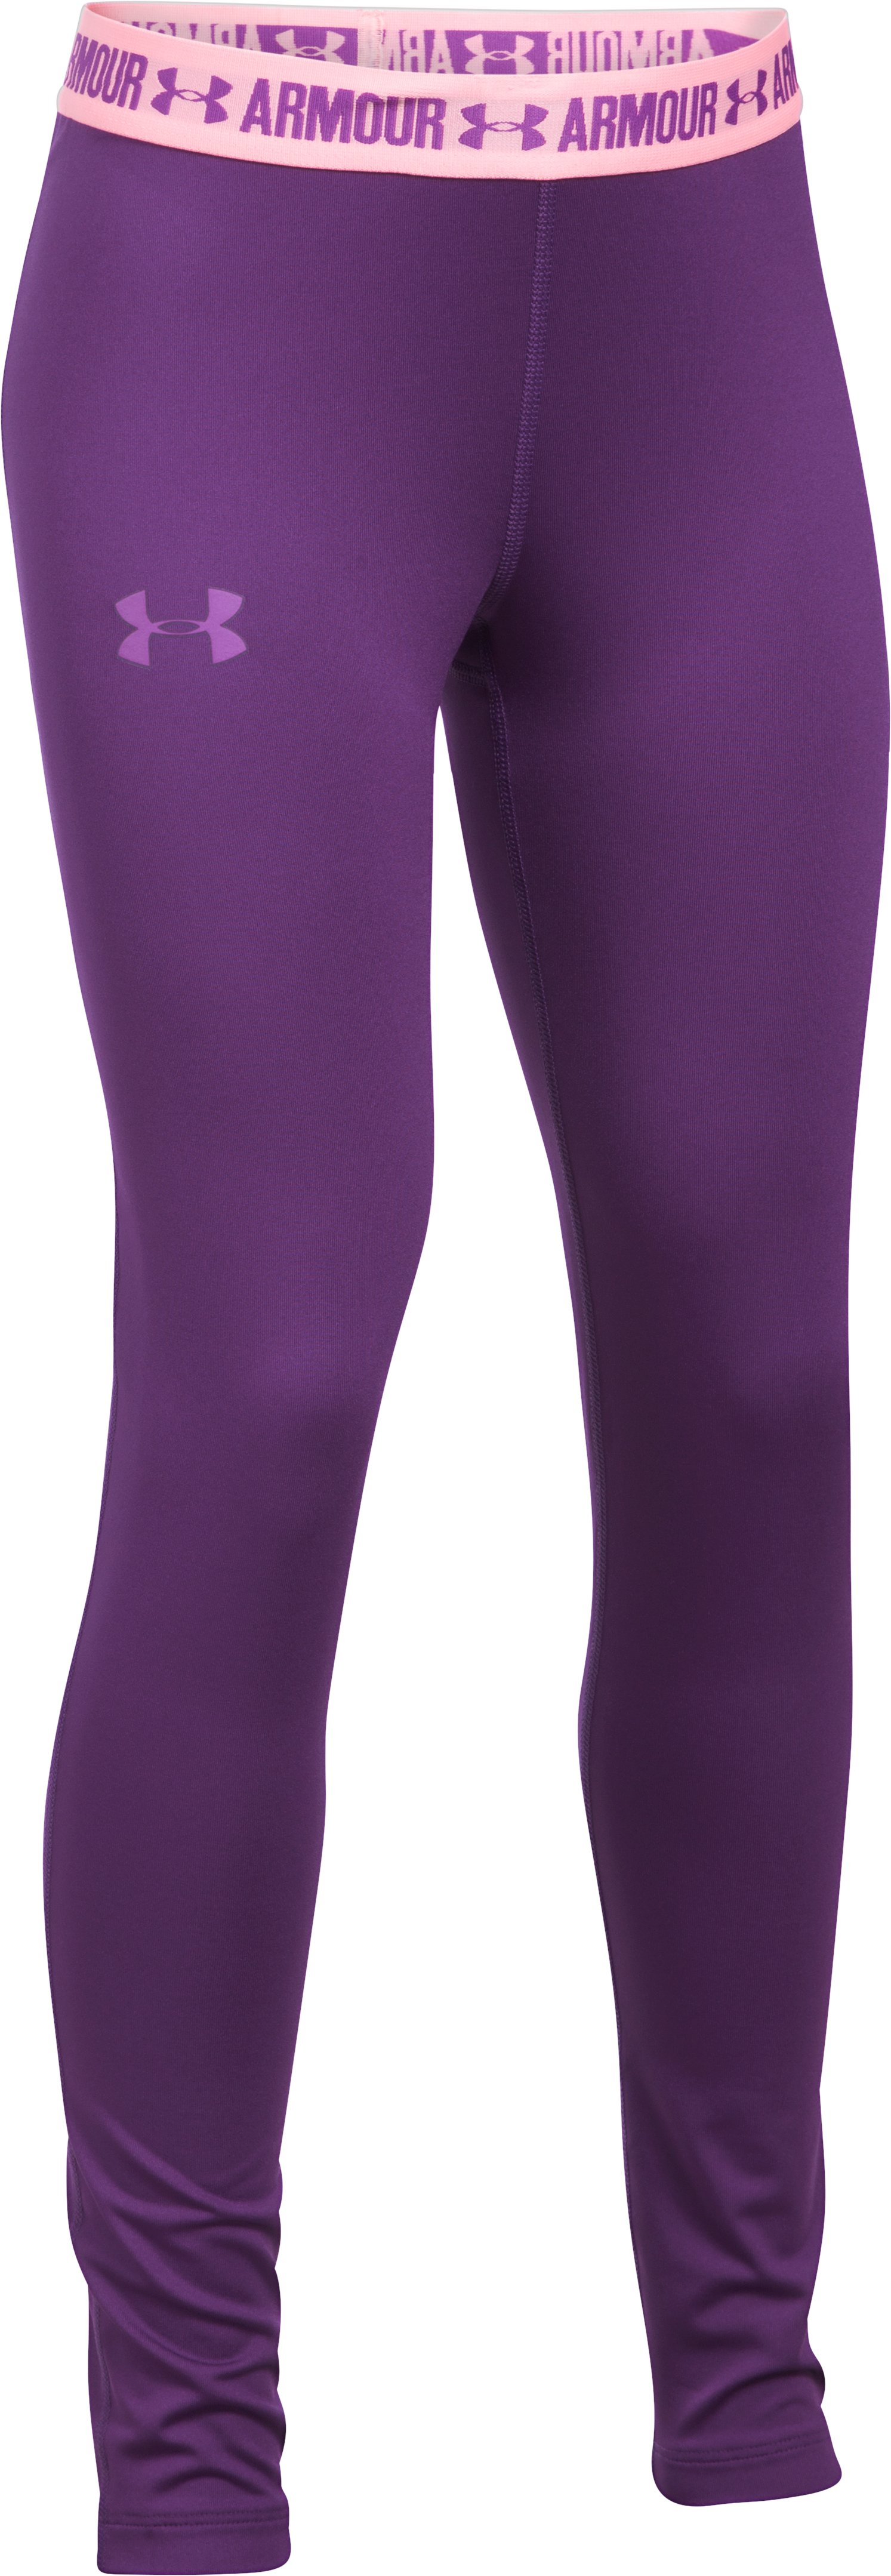 Girls' HeatGear® Armour Leggings, Indulge